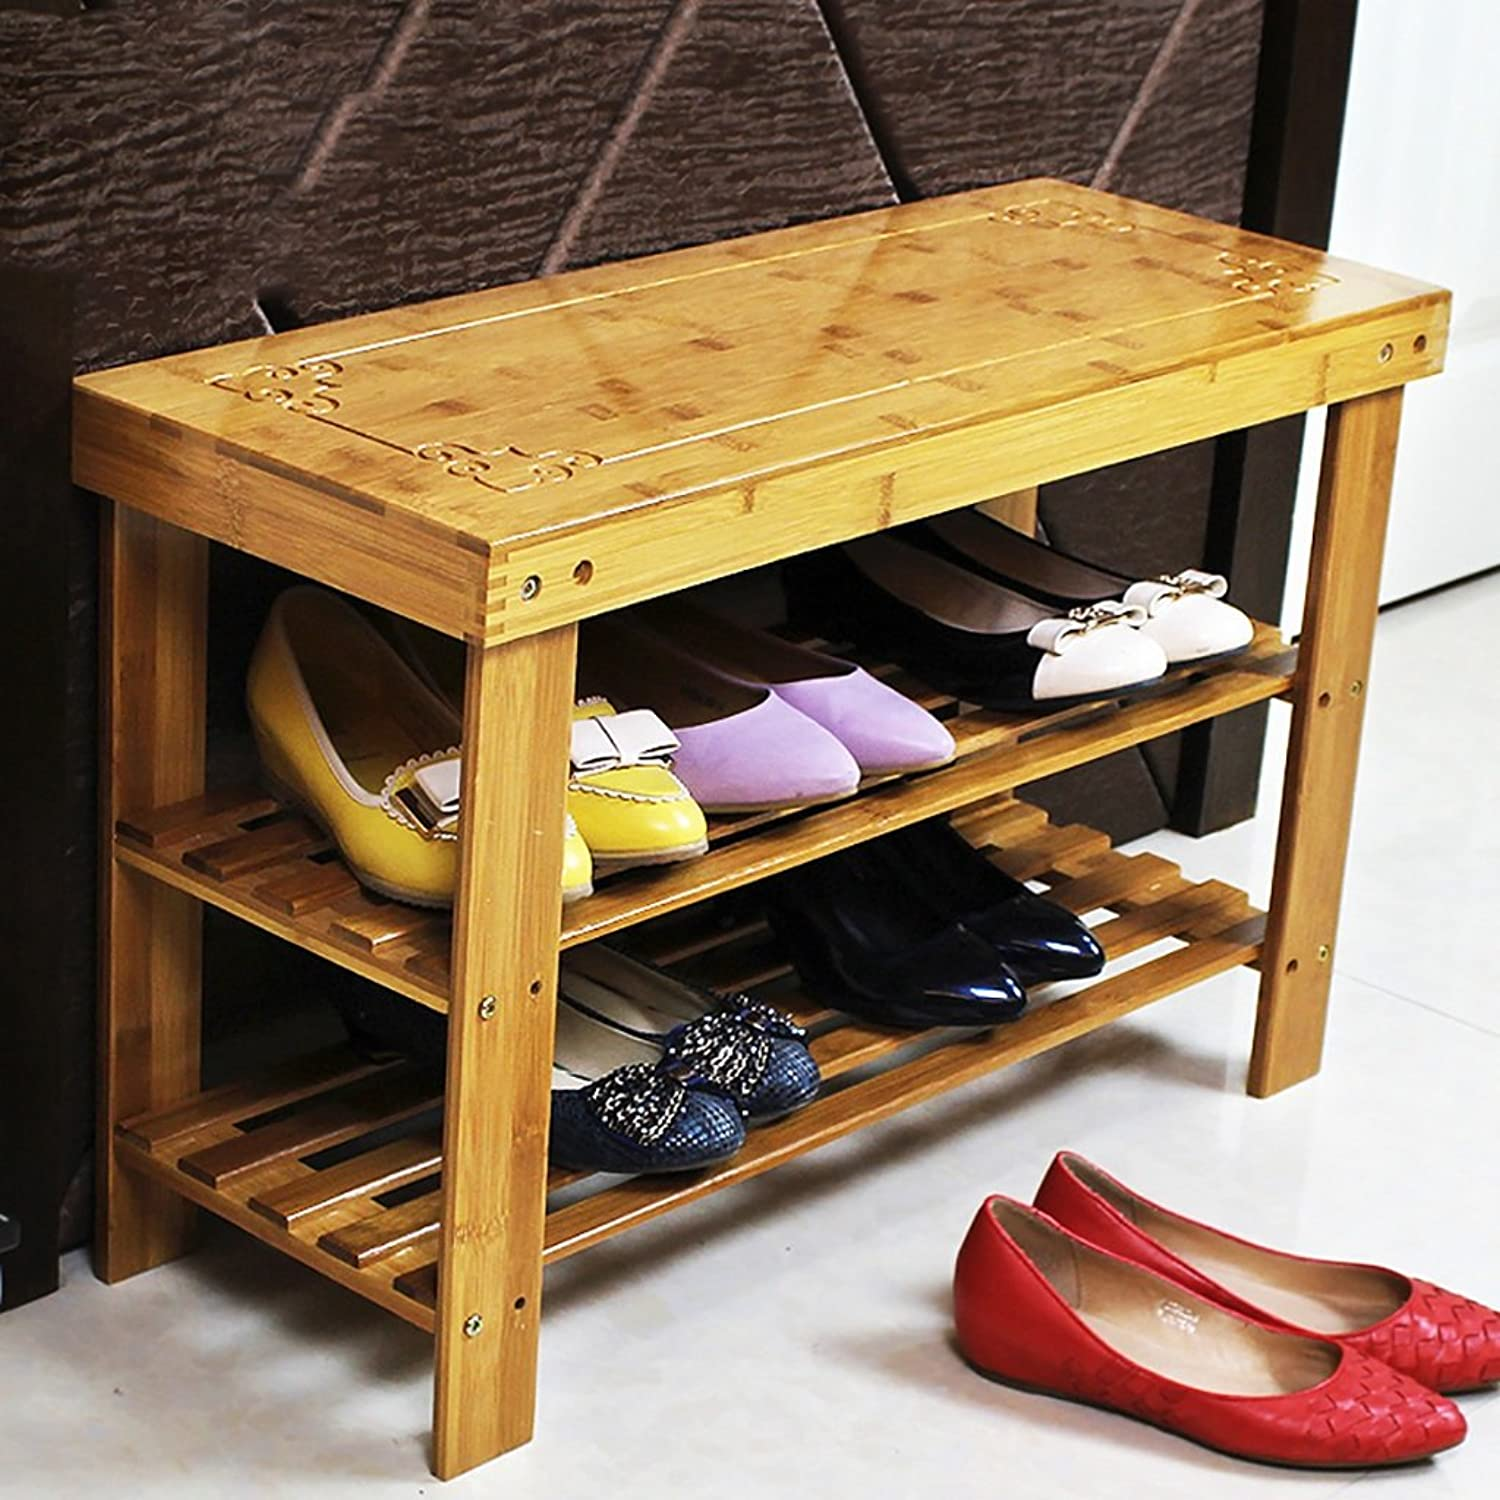 shoes Bench Organizing Rack shoes Shelf Two-Layer dust Solid Wood Nanzhu shoes Cabinet Storage Economy Home Dormitory Bedroom Assembly Living Room shoes